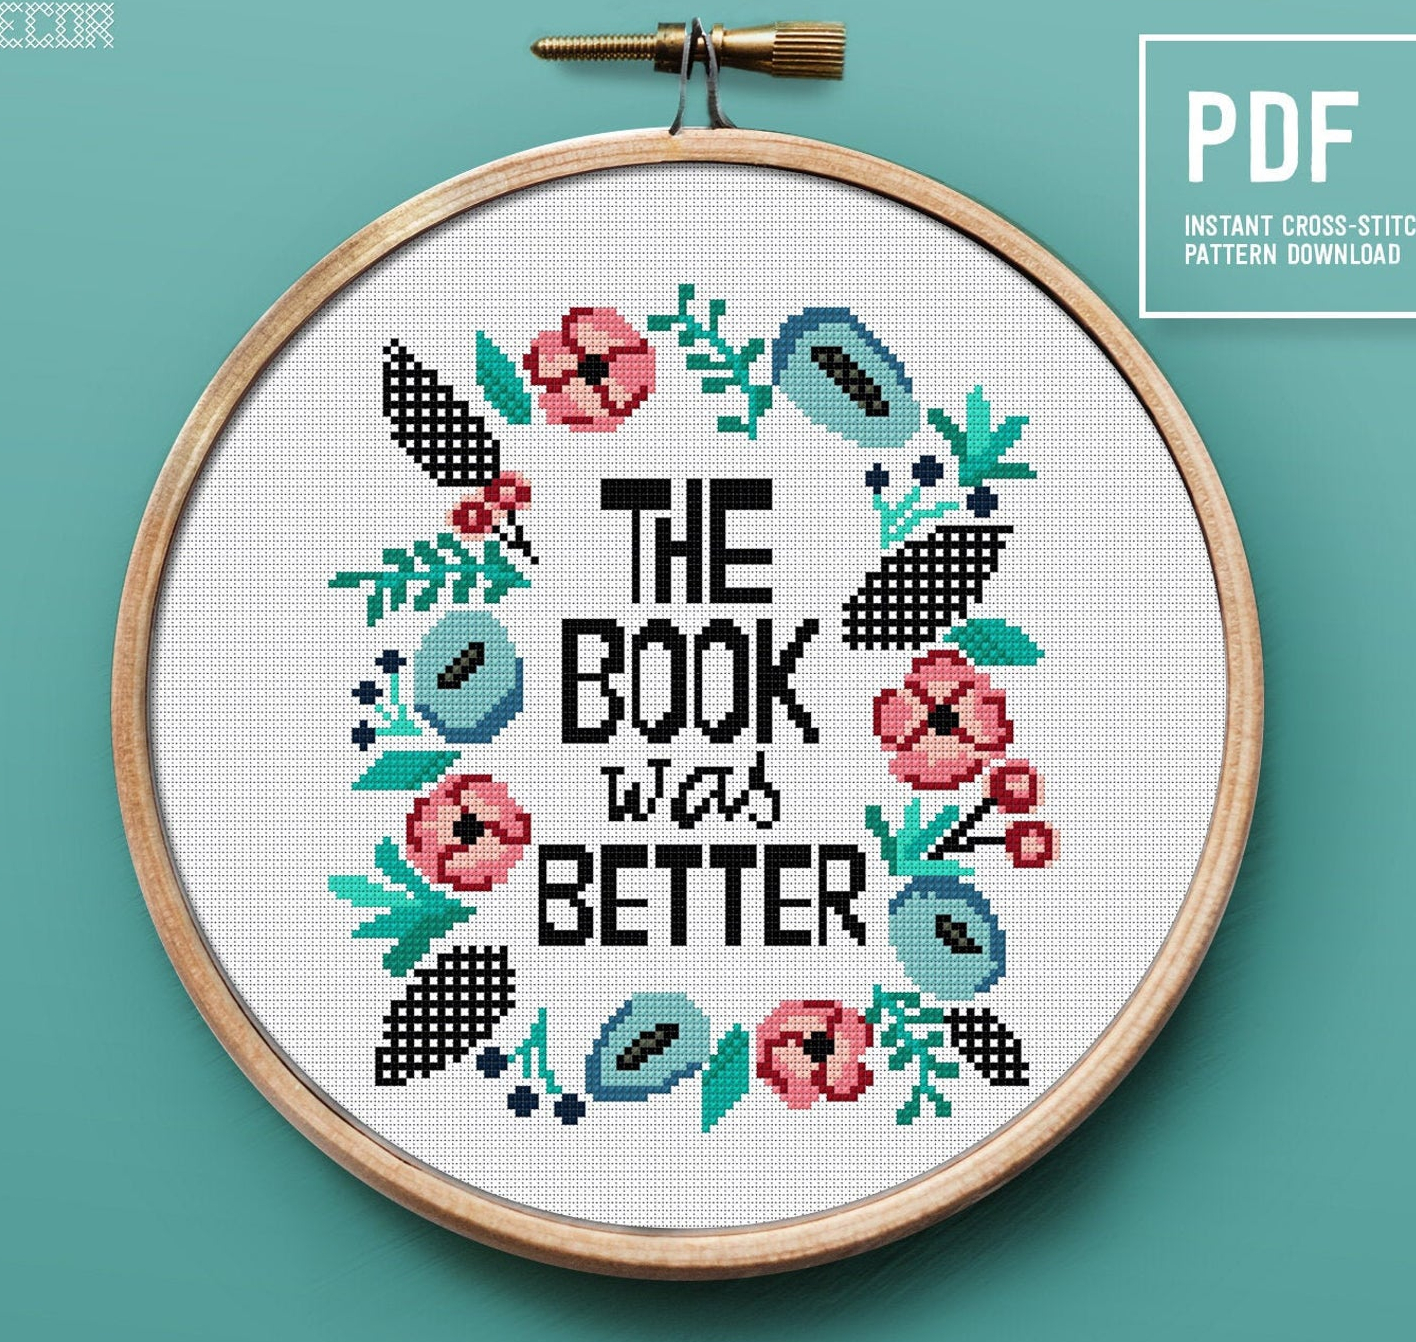 More Awesome Literary Embroidery, blog post by Aspasia S. Bissas, needlepoint, embroidery, cross-stitch, cross stitch, crossstitch, patterns, free patterns, books, reading, bookish, literary, aspasiasbissas.com, the book was better, etsy, pattern download